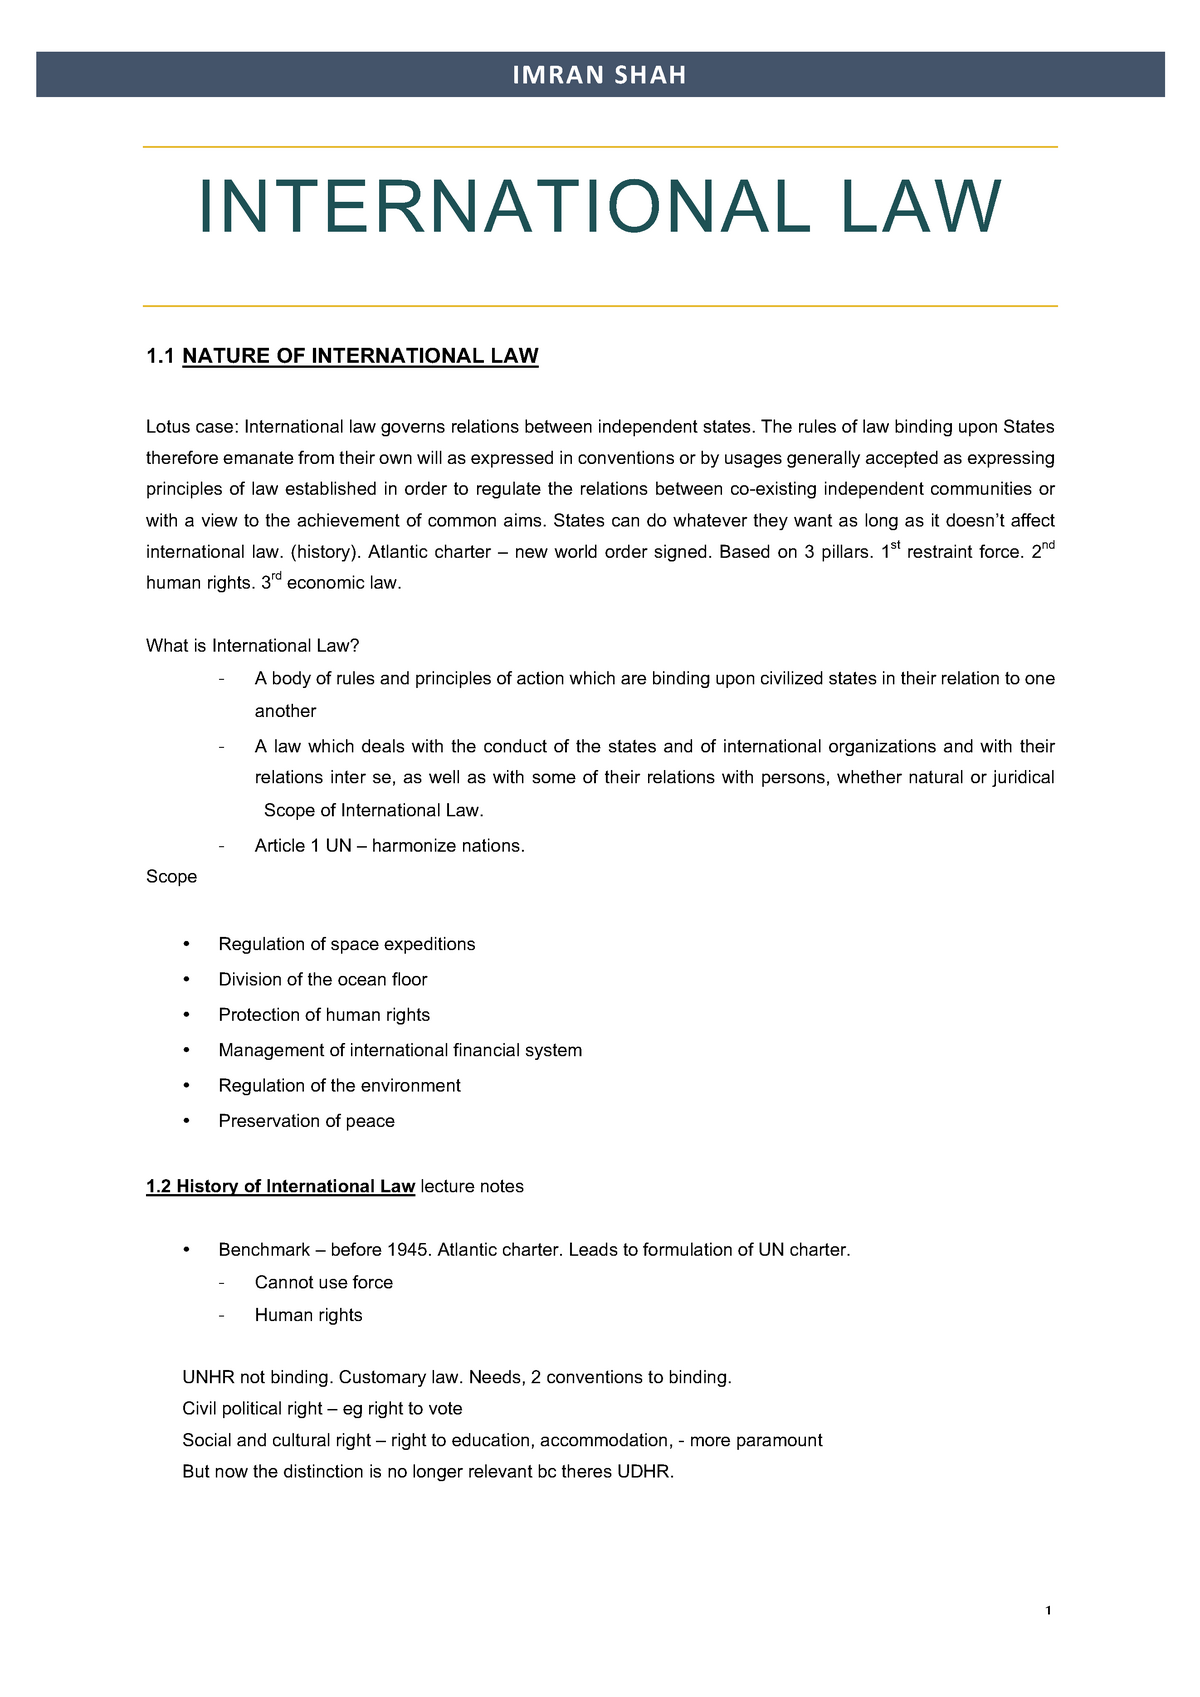 Public International 1 (Law Lecture Notes) - Imran Shah